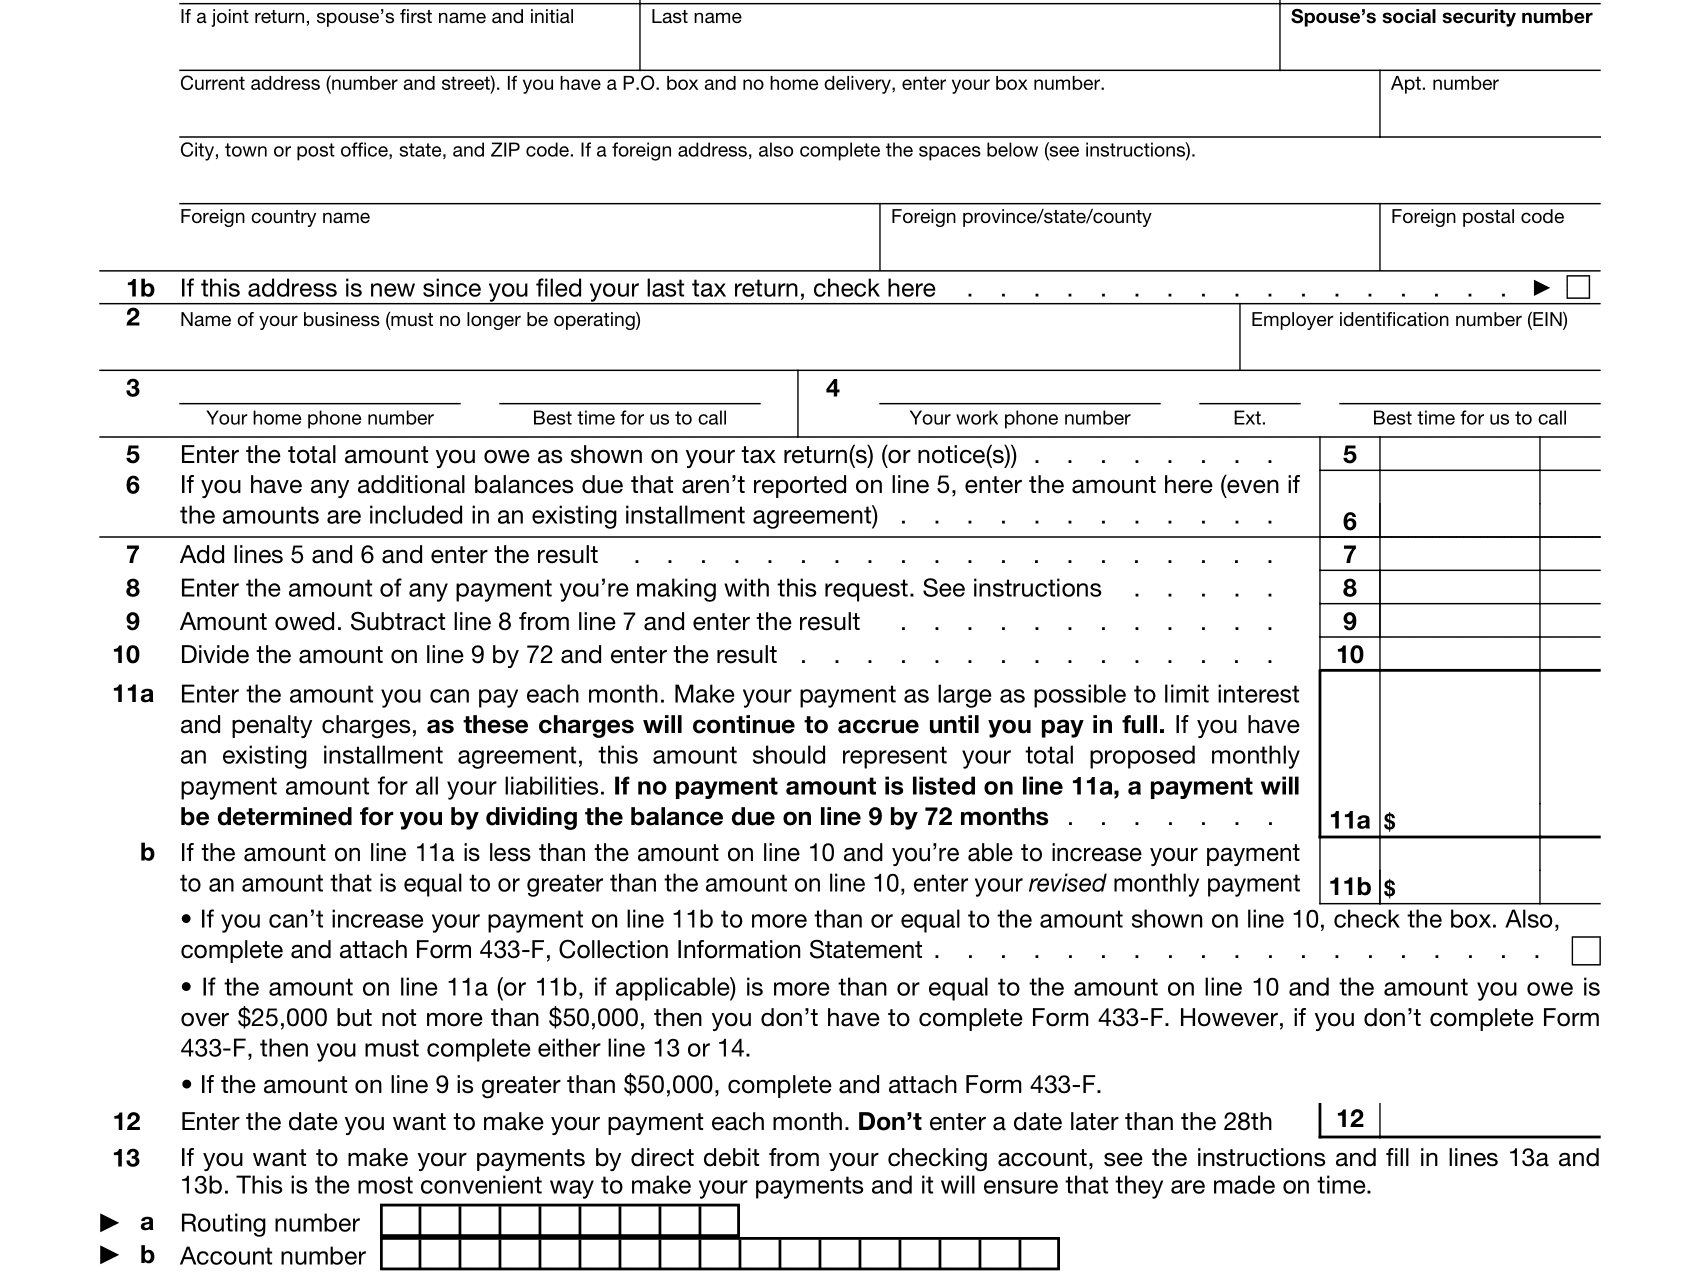 Sample Letter Requesting Installment Payments from www.investopedia.com